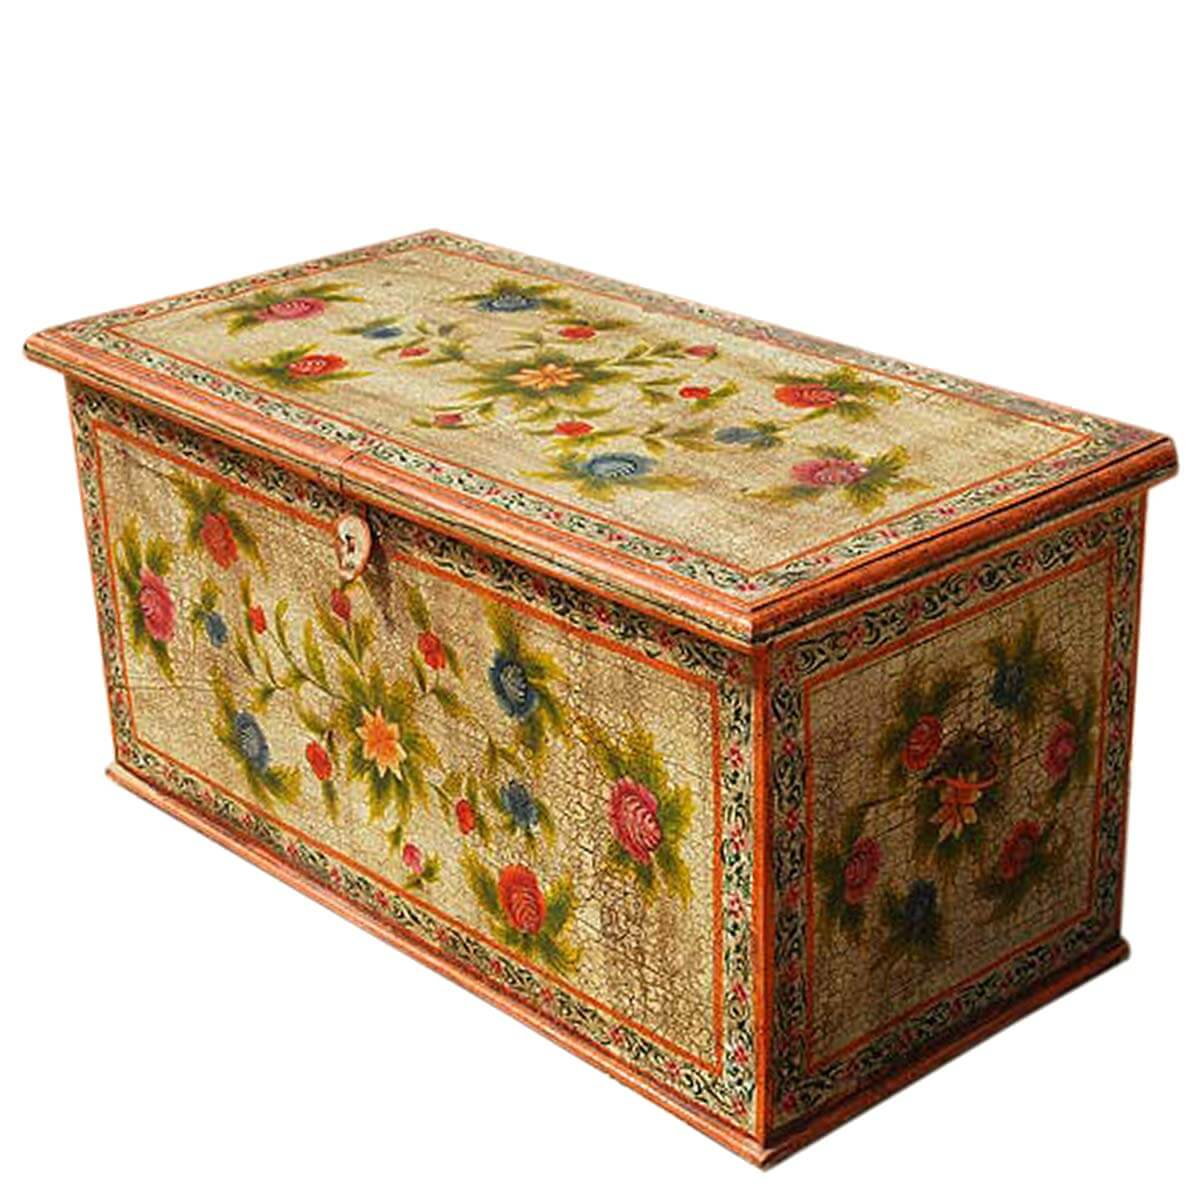 Hardwood hand painted storage trunk coffee table solid hardwood hand painted storage trunk coffee table geotapseo Image collections